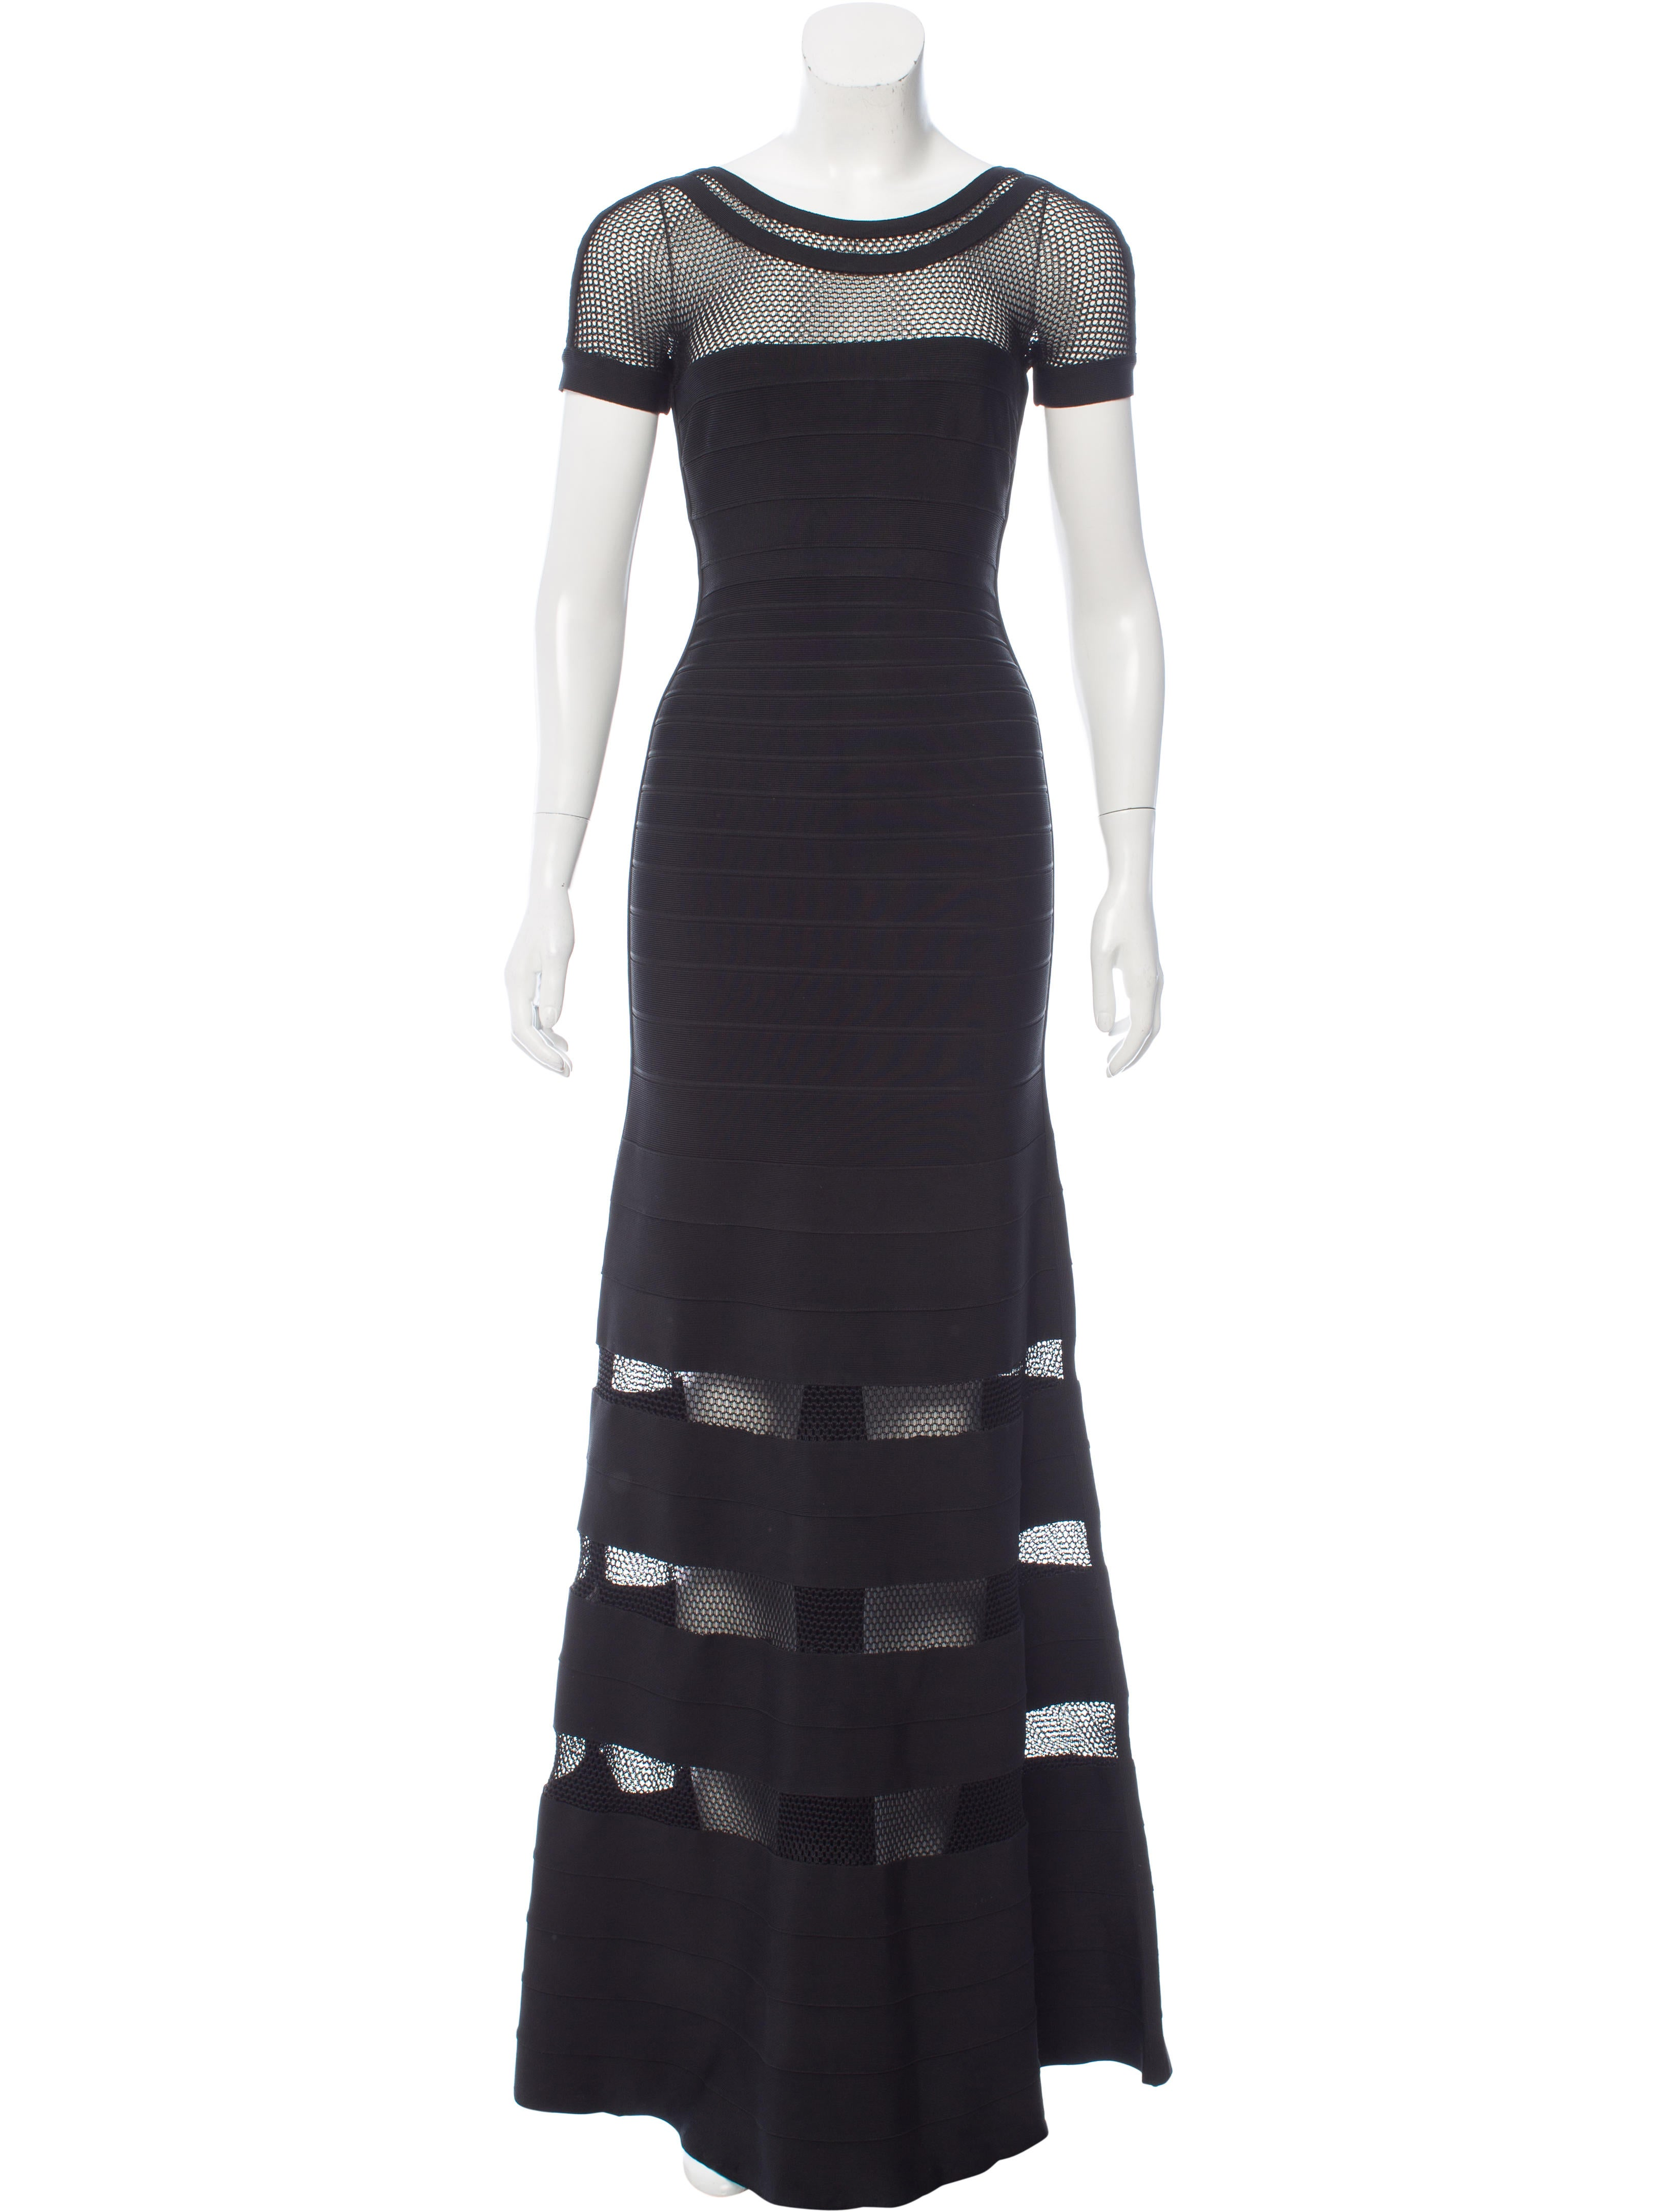 Herve Leger Gweneth Evening Gown - Clothing - HEV29592 | The RealReal